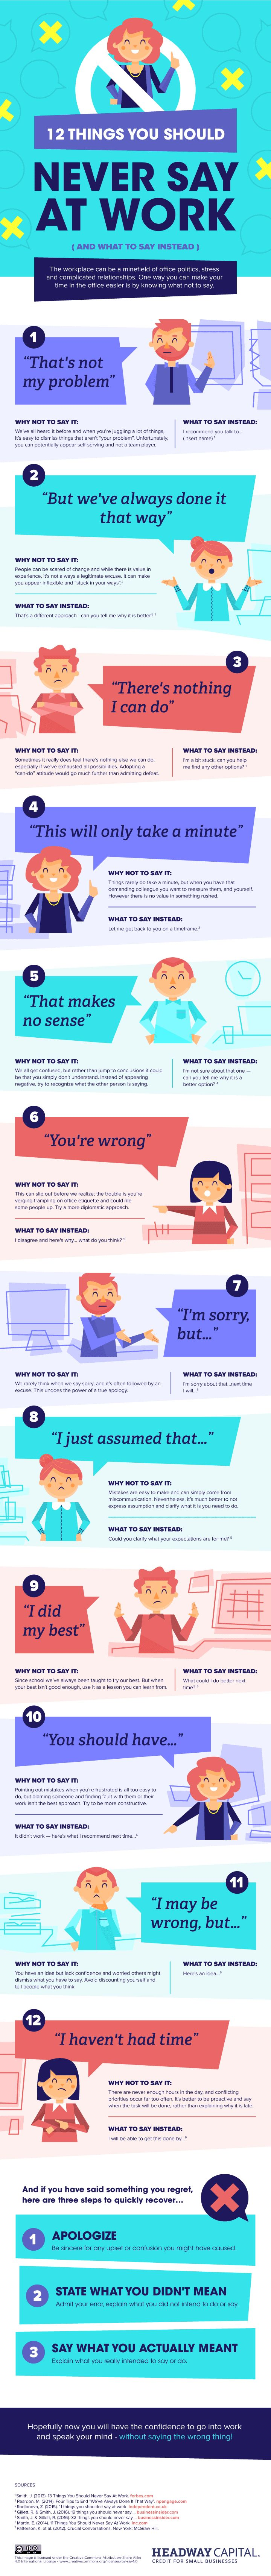 12 Things You Should Never Say At Work #infographic #EmployeeBenefits #Workplace #Office